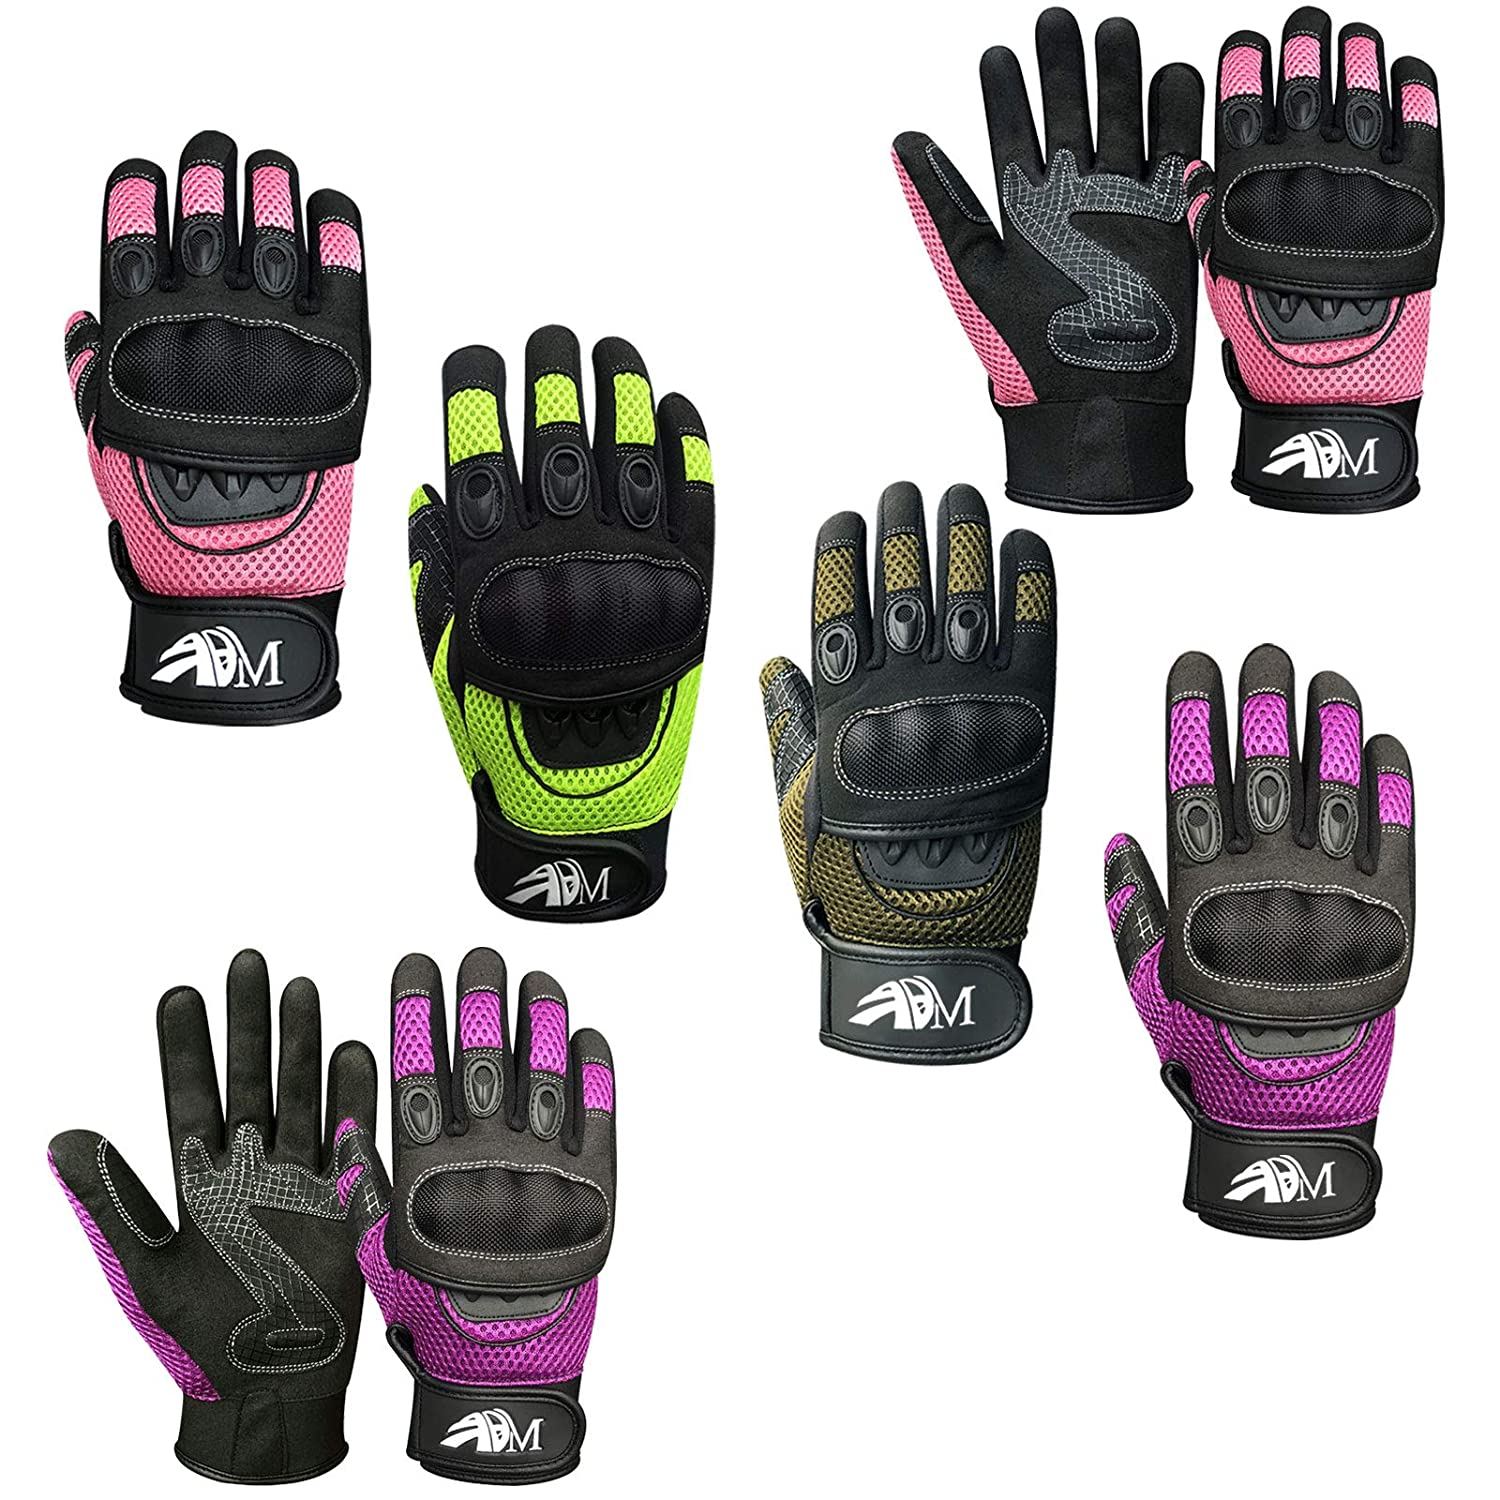 Ladies Full Finger Summer Motorbike Mountain Bike knuckle Protection Racing Gloves 9001 LDY (9001 Purple LDY, M) Prime Leather